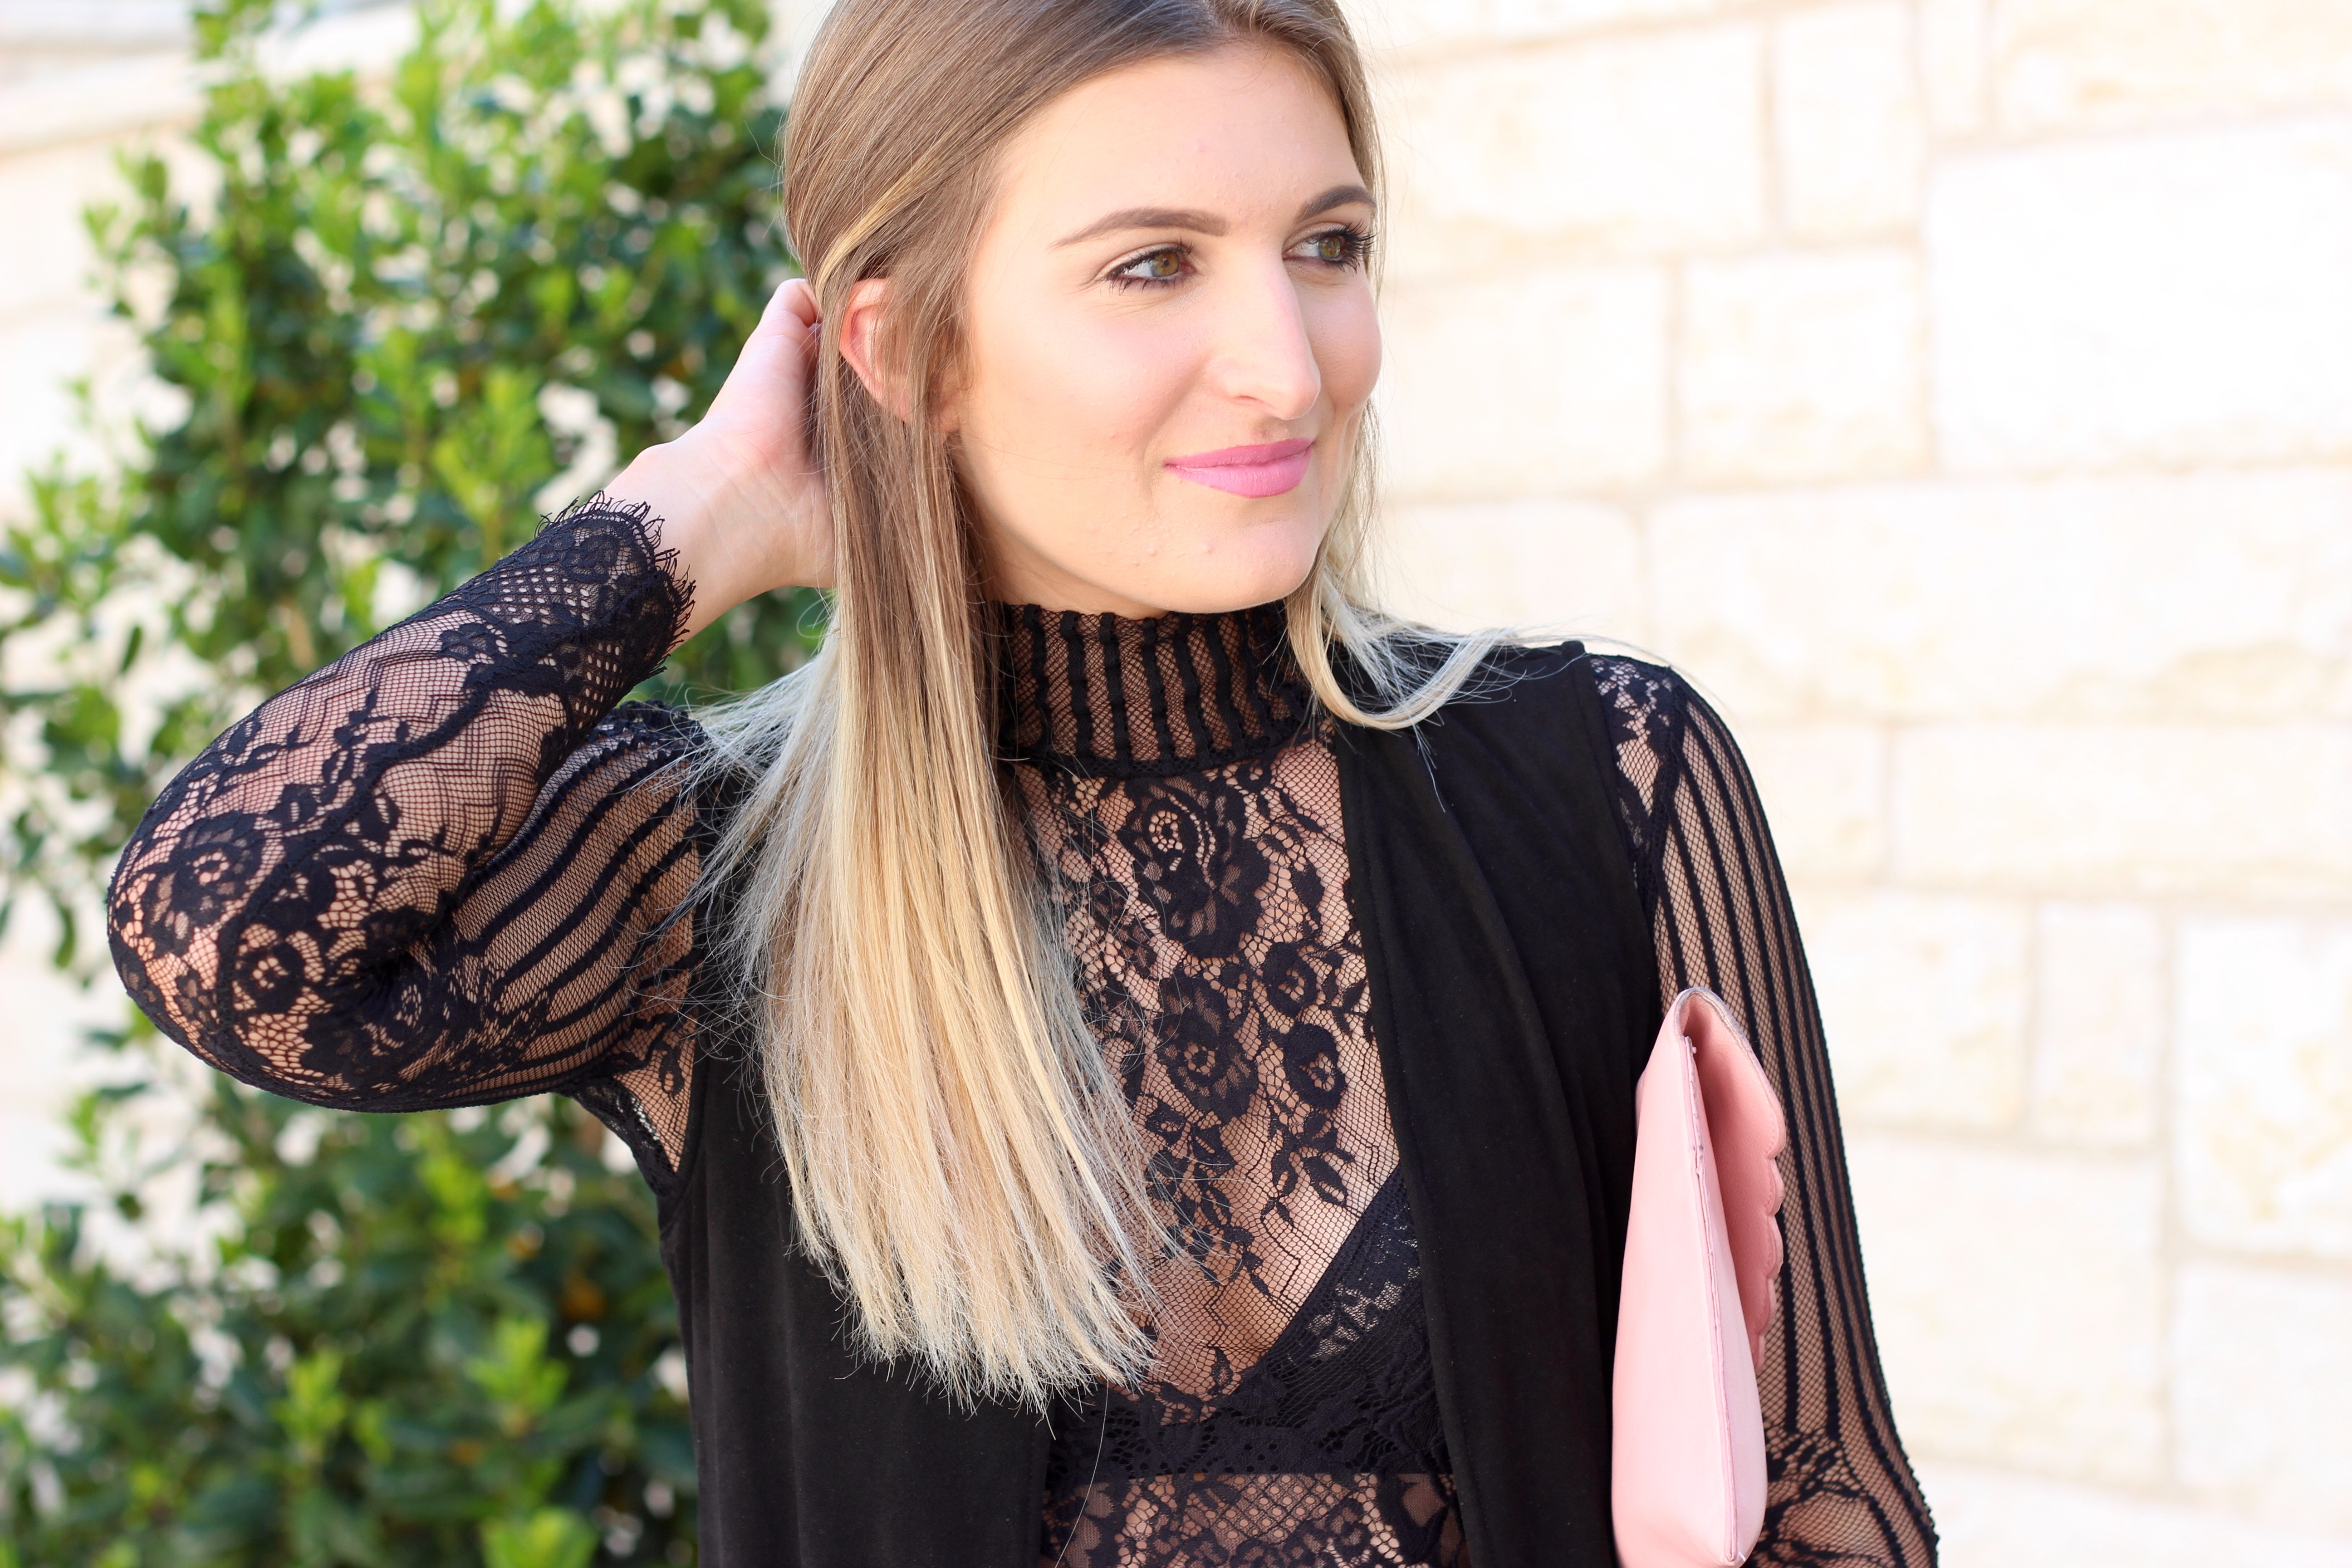 lace crop top details - Lingerie Outfit By Day by popular Texas fashion blogger Audrey Madison Stowe